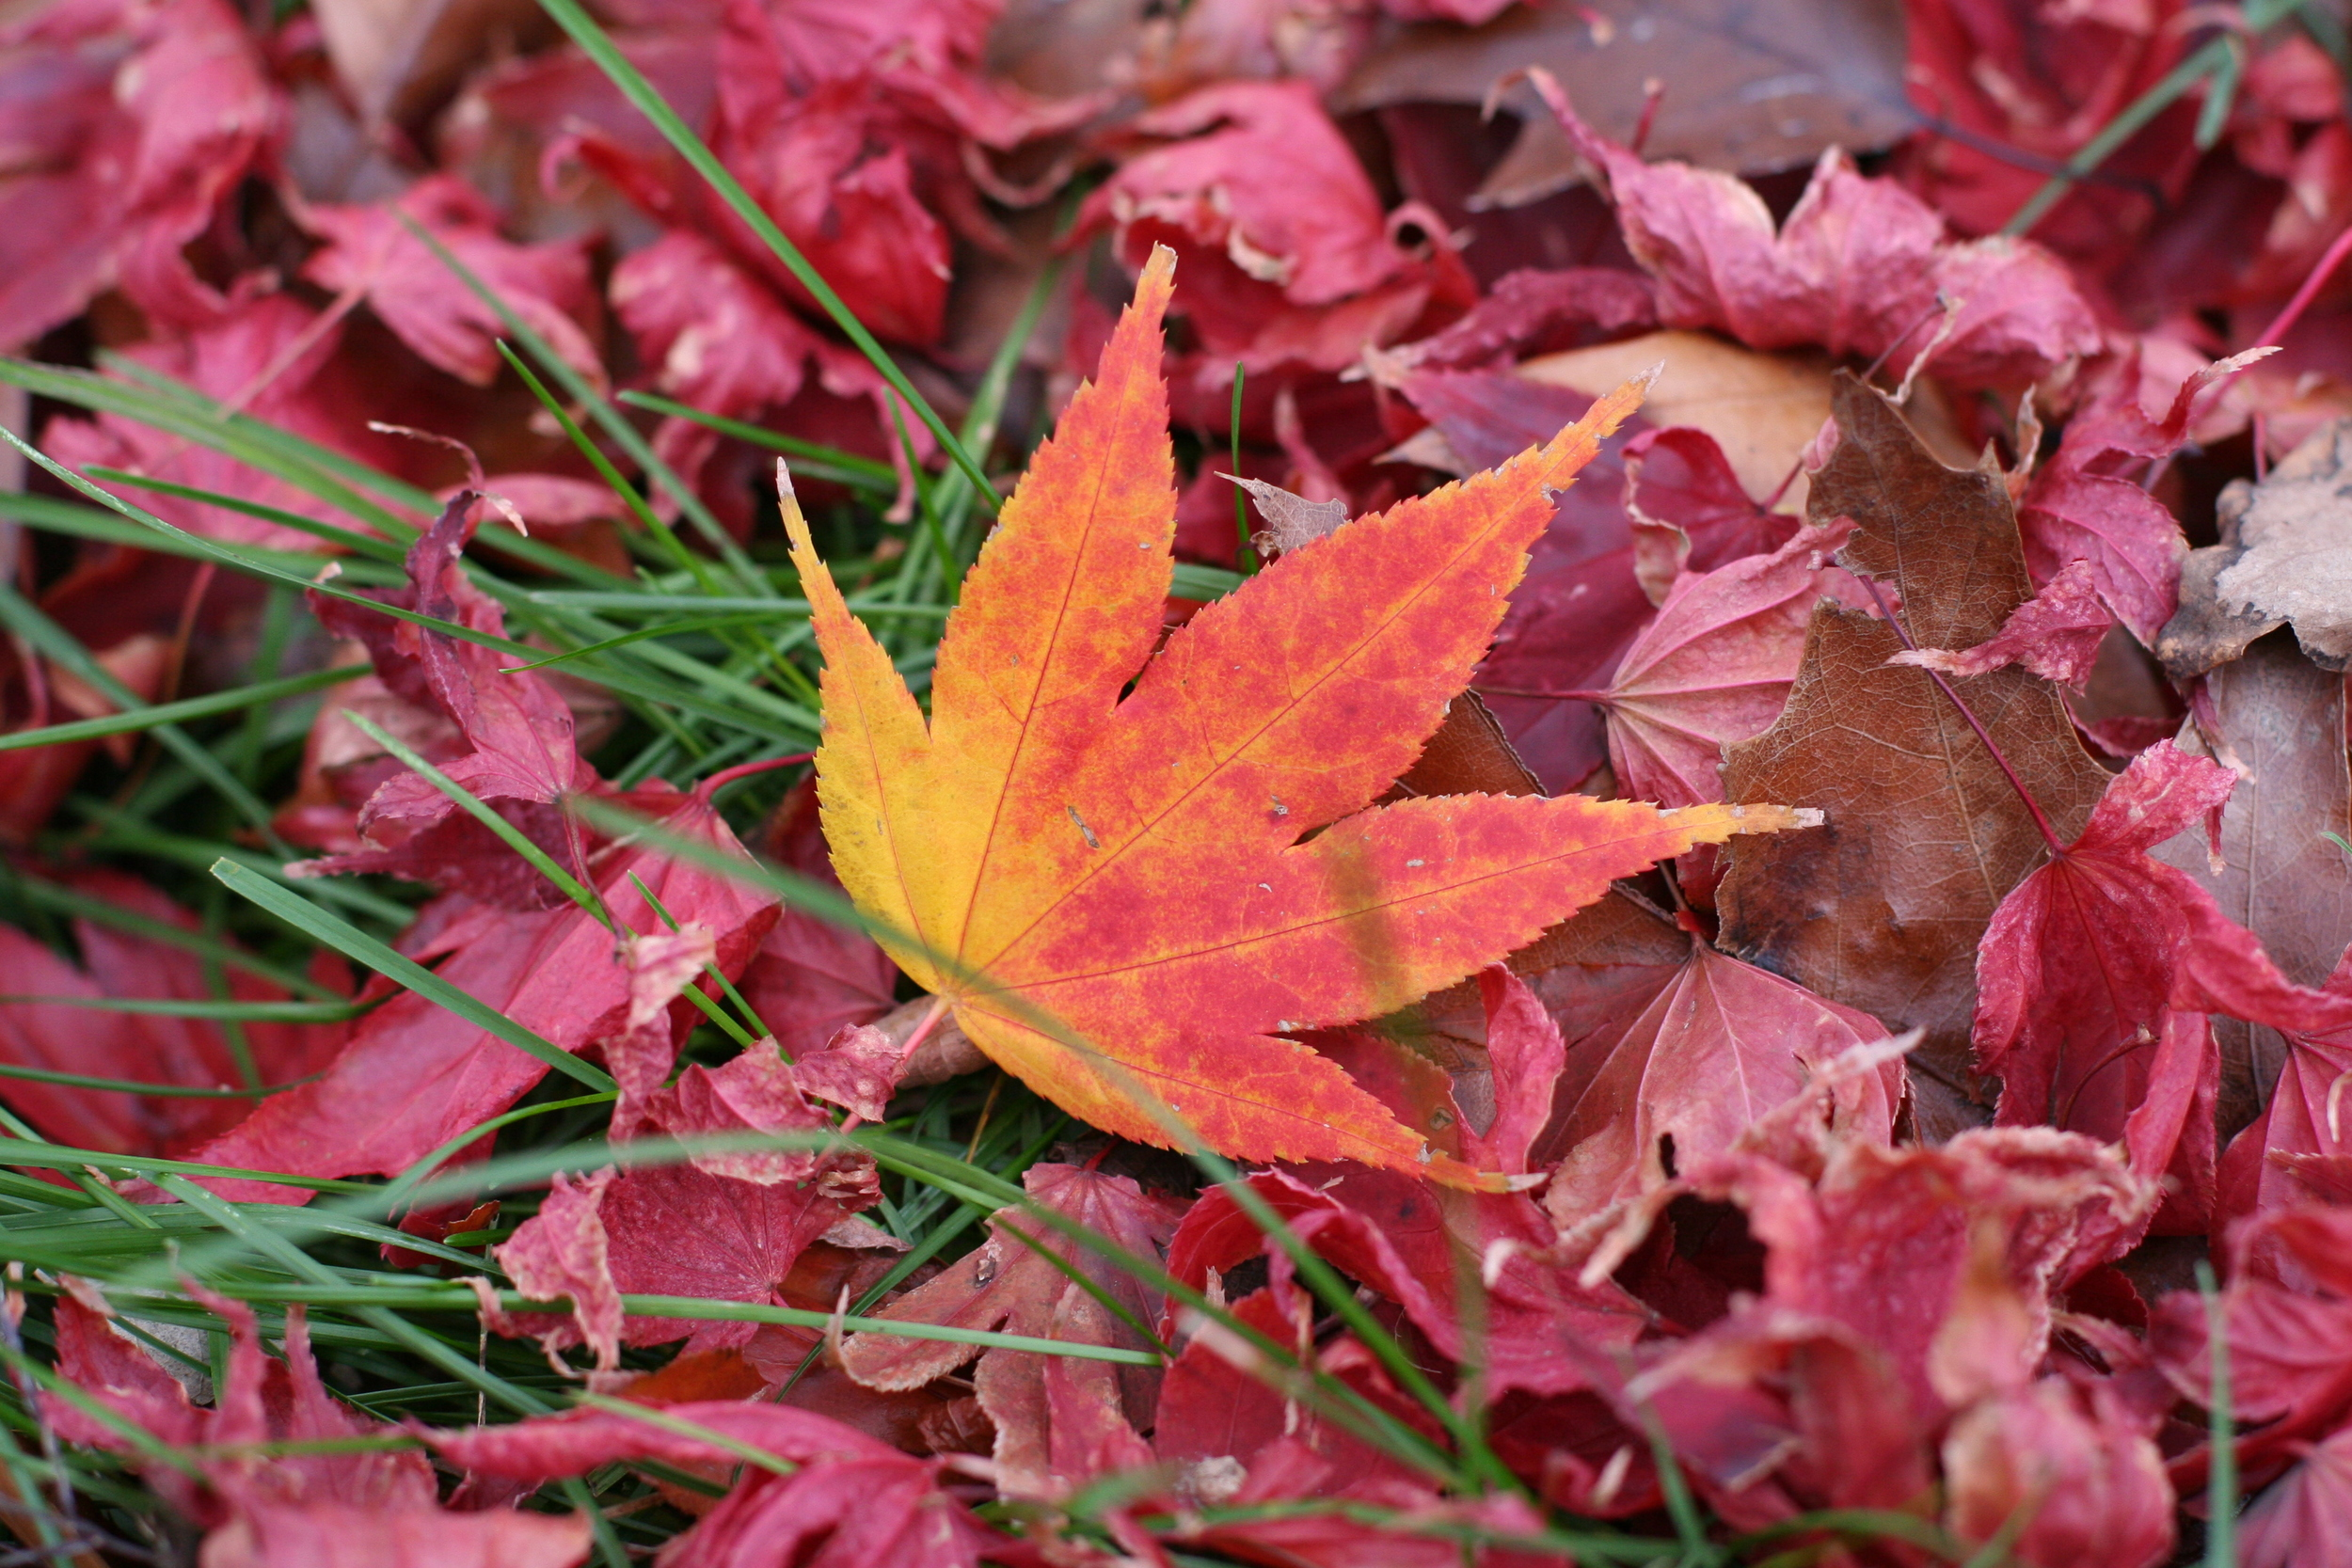 Don't rake away those fall leaves! Collect and use them.